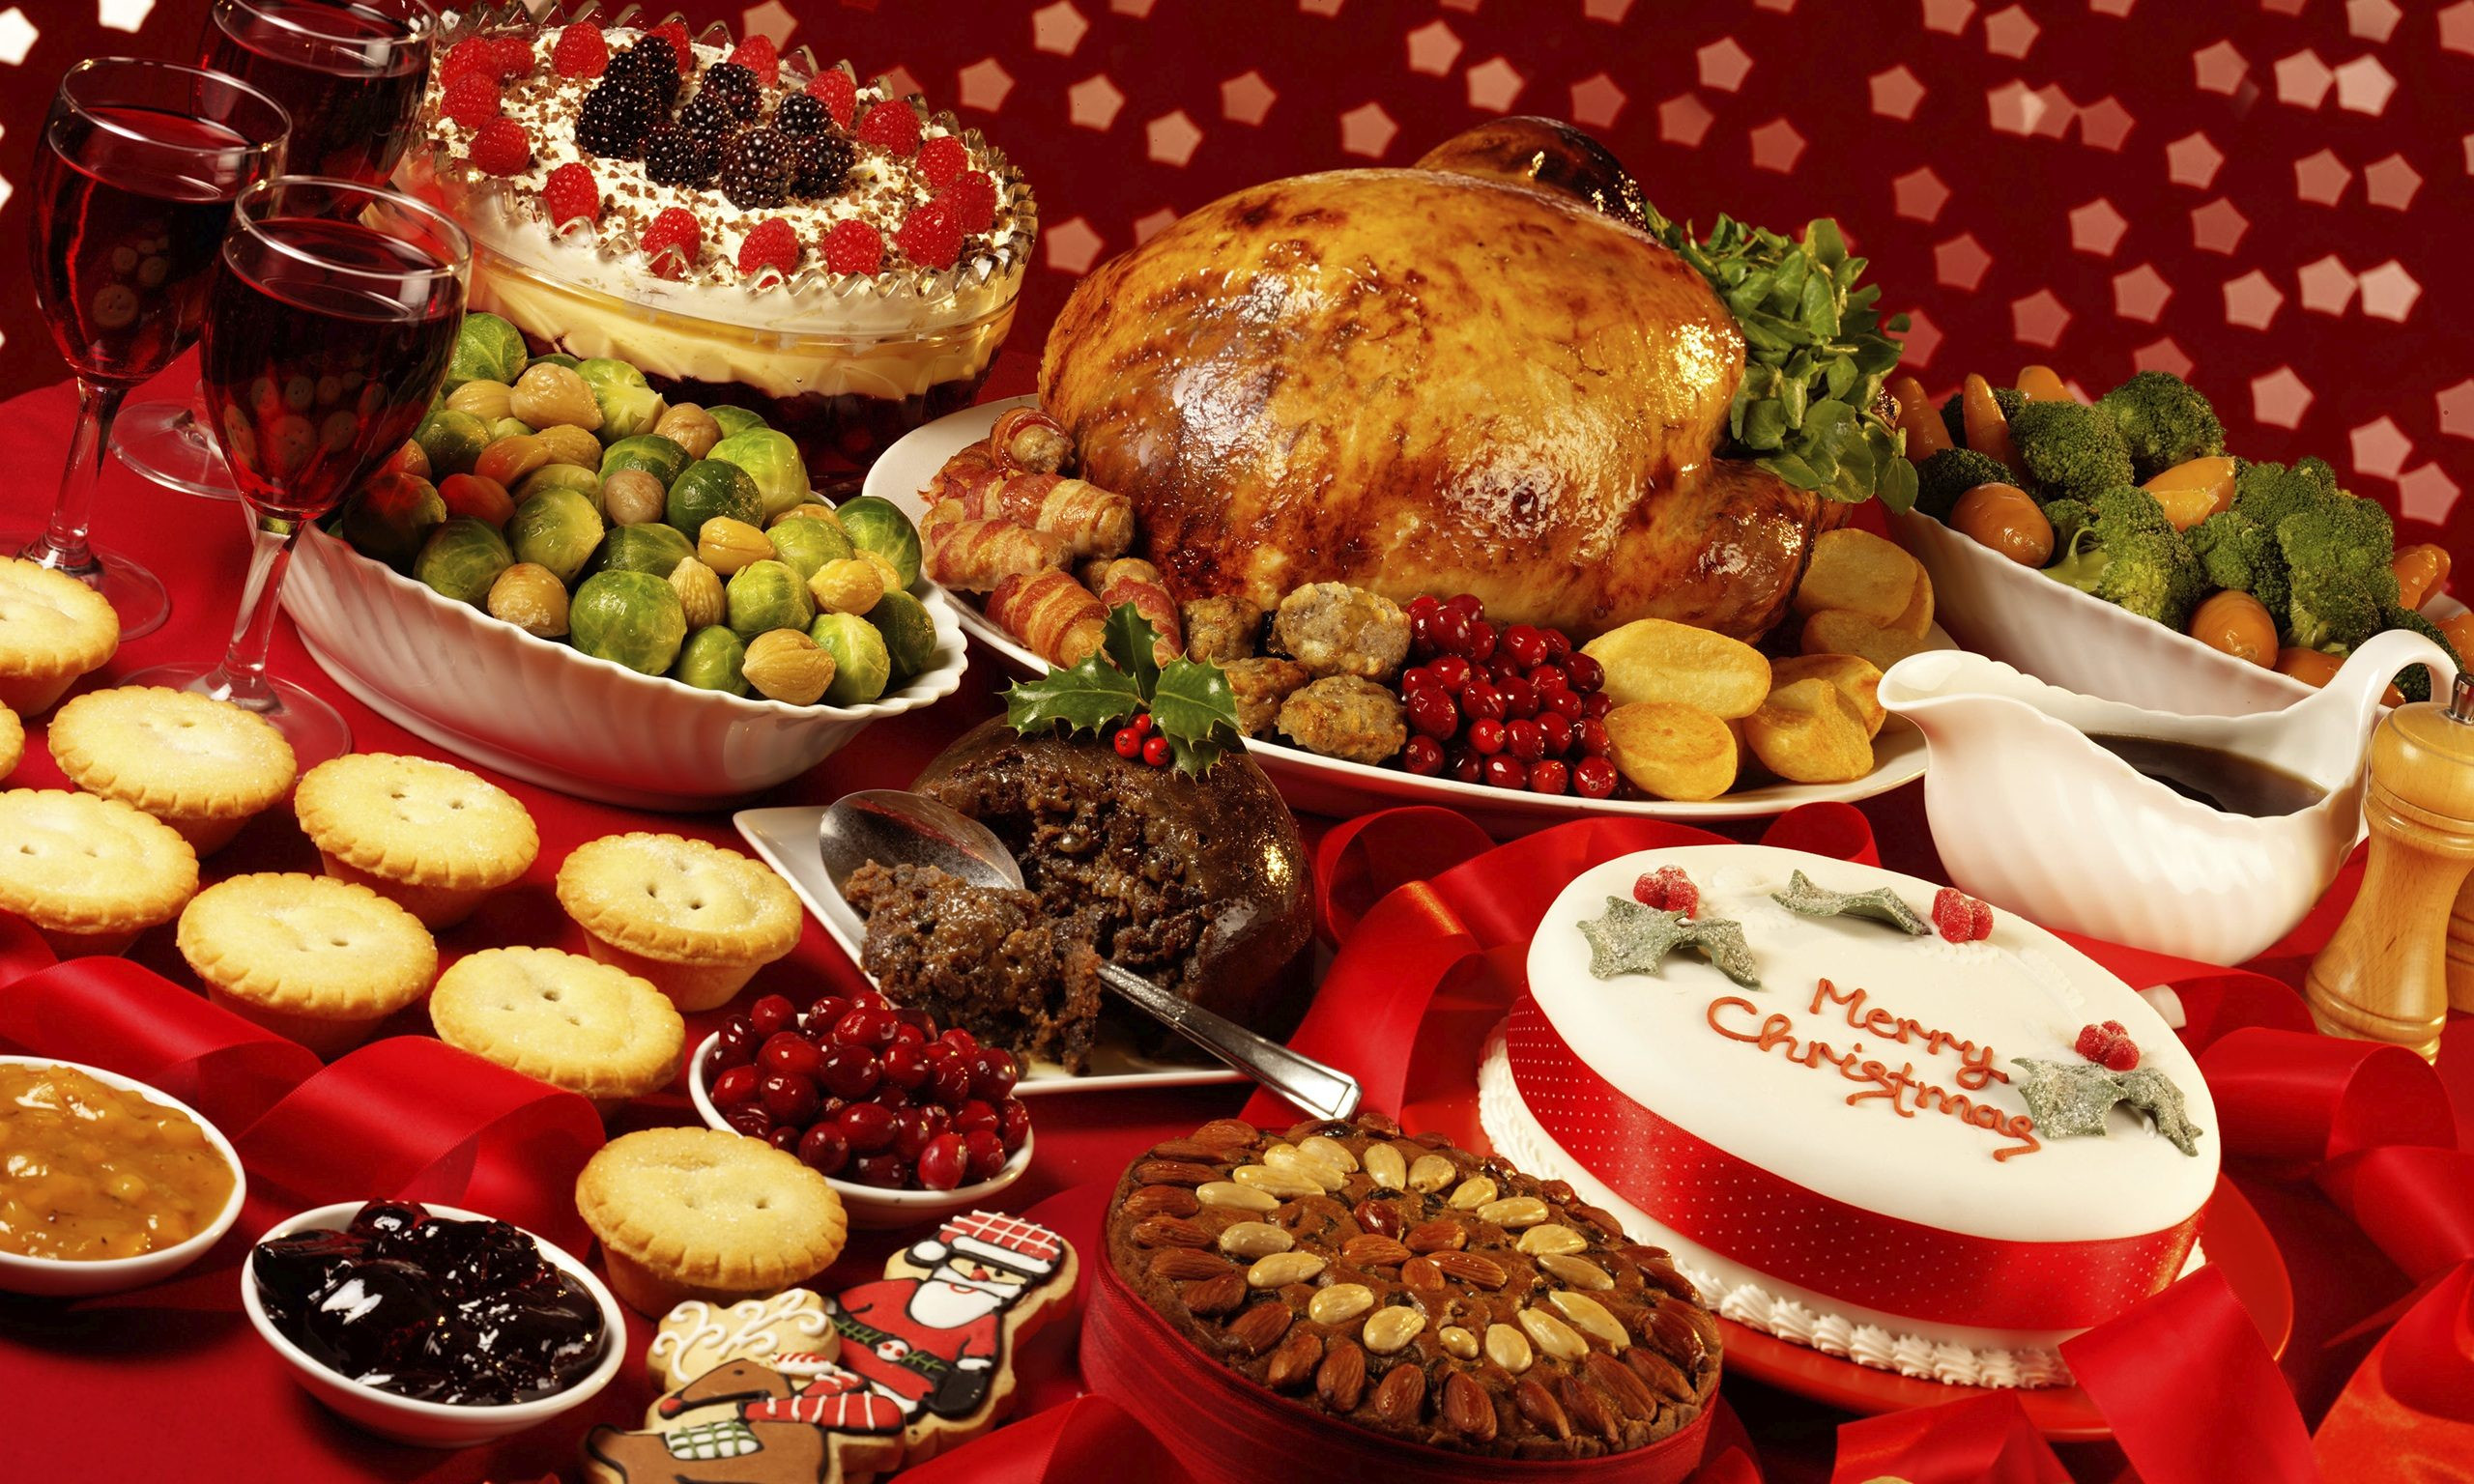 Christmas Dinner Images  Worried About Overeating This Christmas